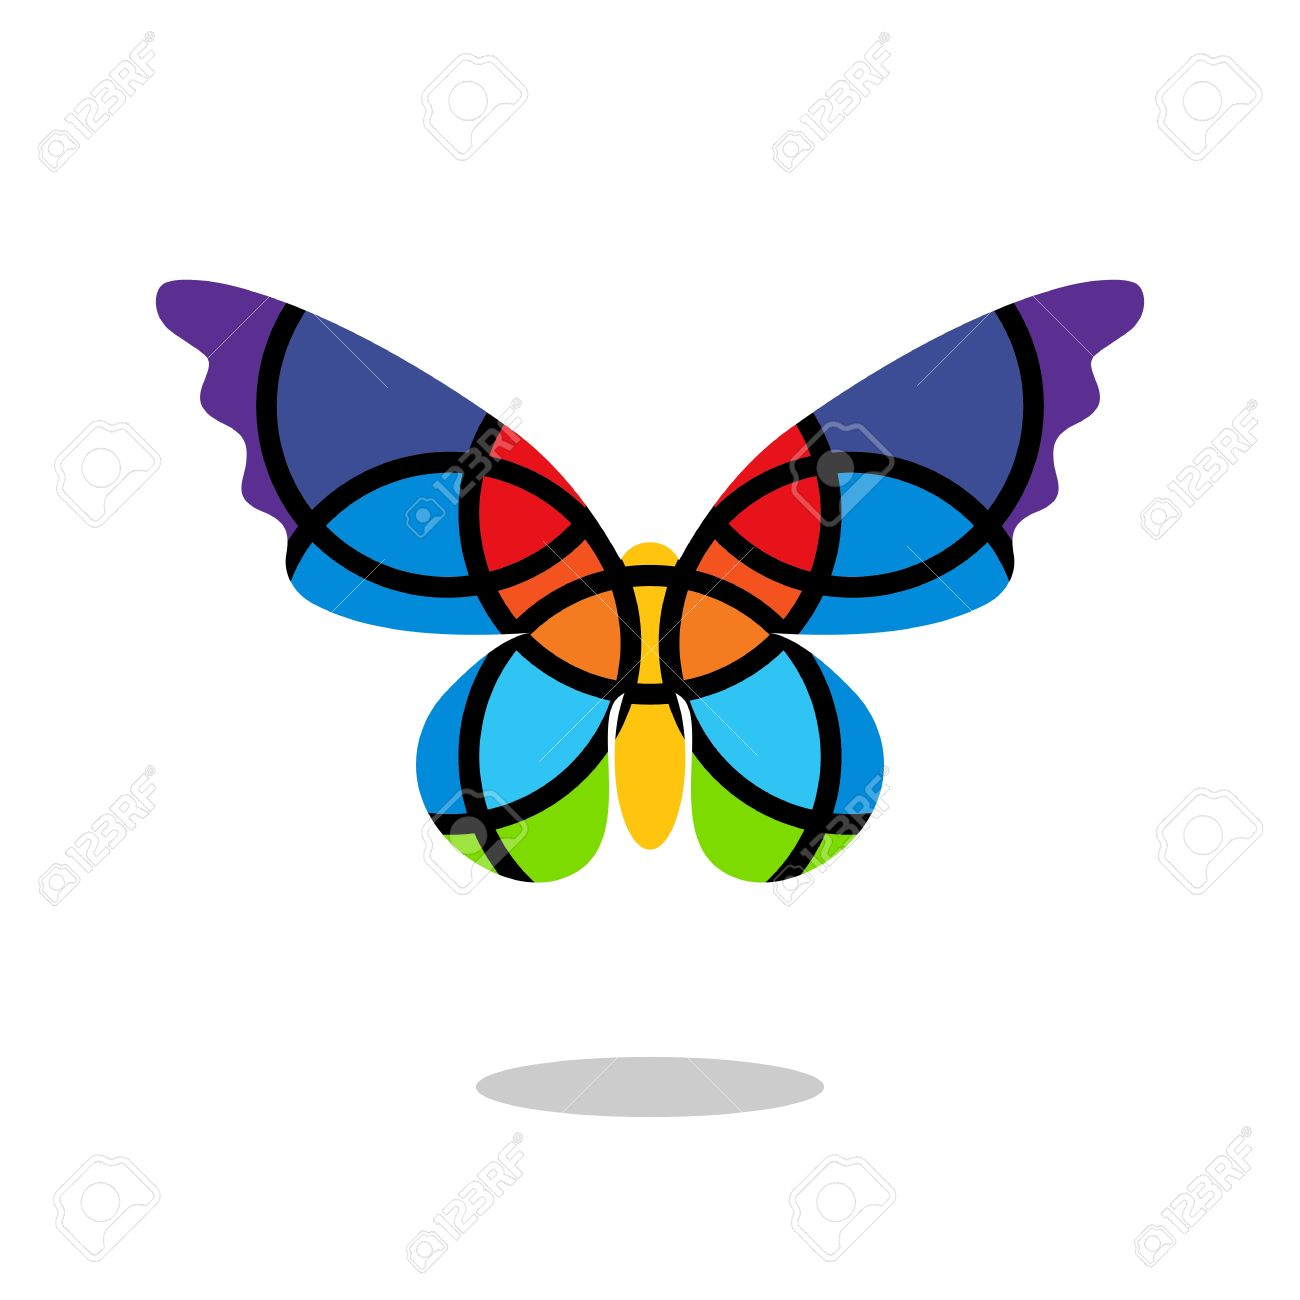 Butterfly Mosaic Isolated With Drop Shadow. White Background.